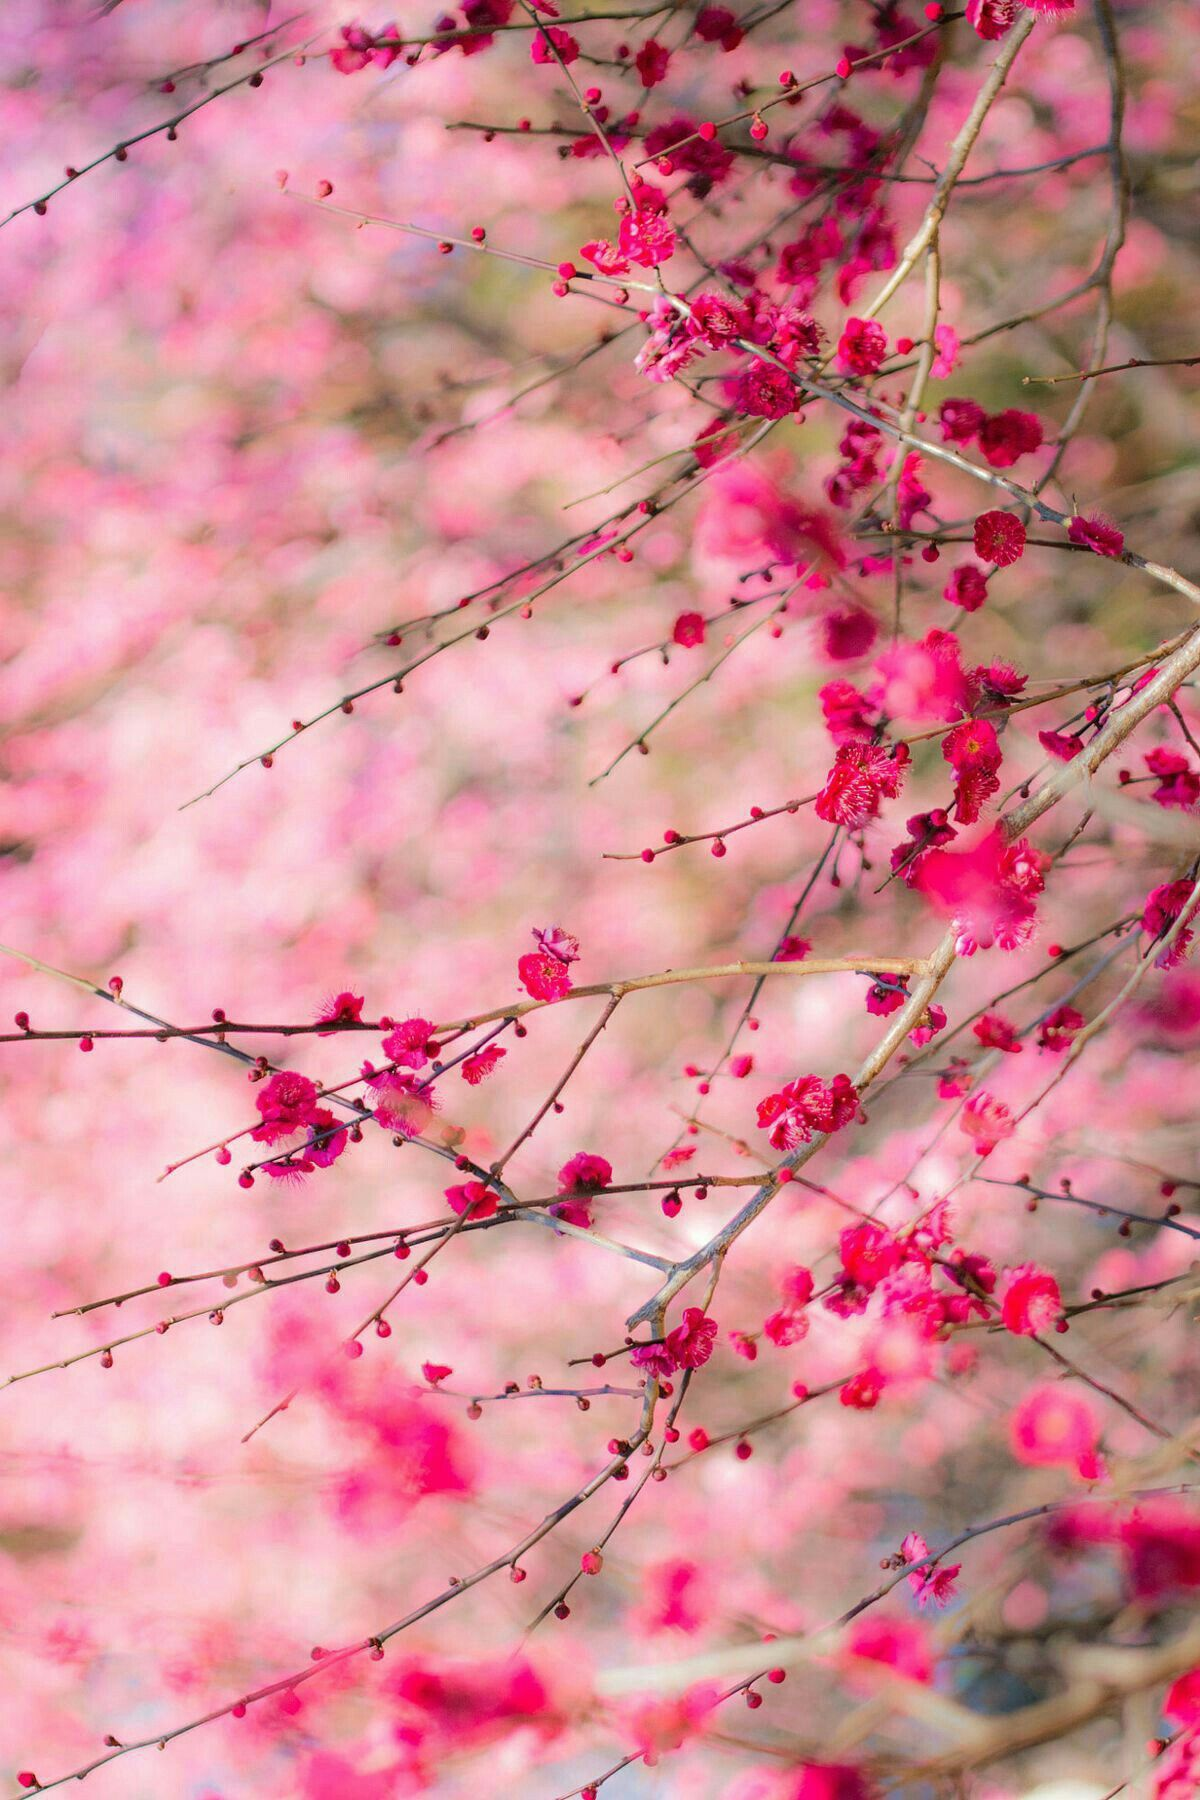 Pin By Tania Mendoza On Flowers Nature Photography Beautiful Flowers Wallpapers Beautiful Nature Wallpaper